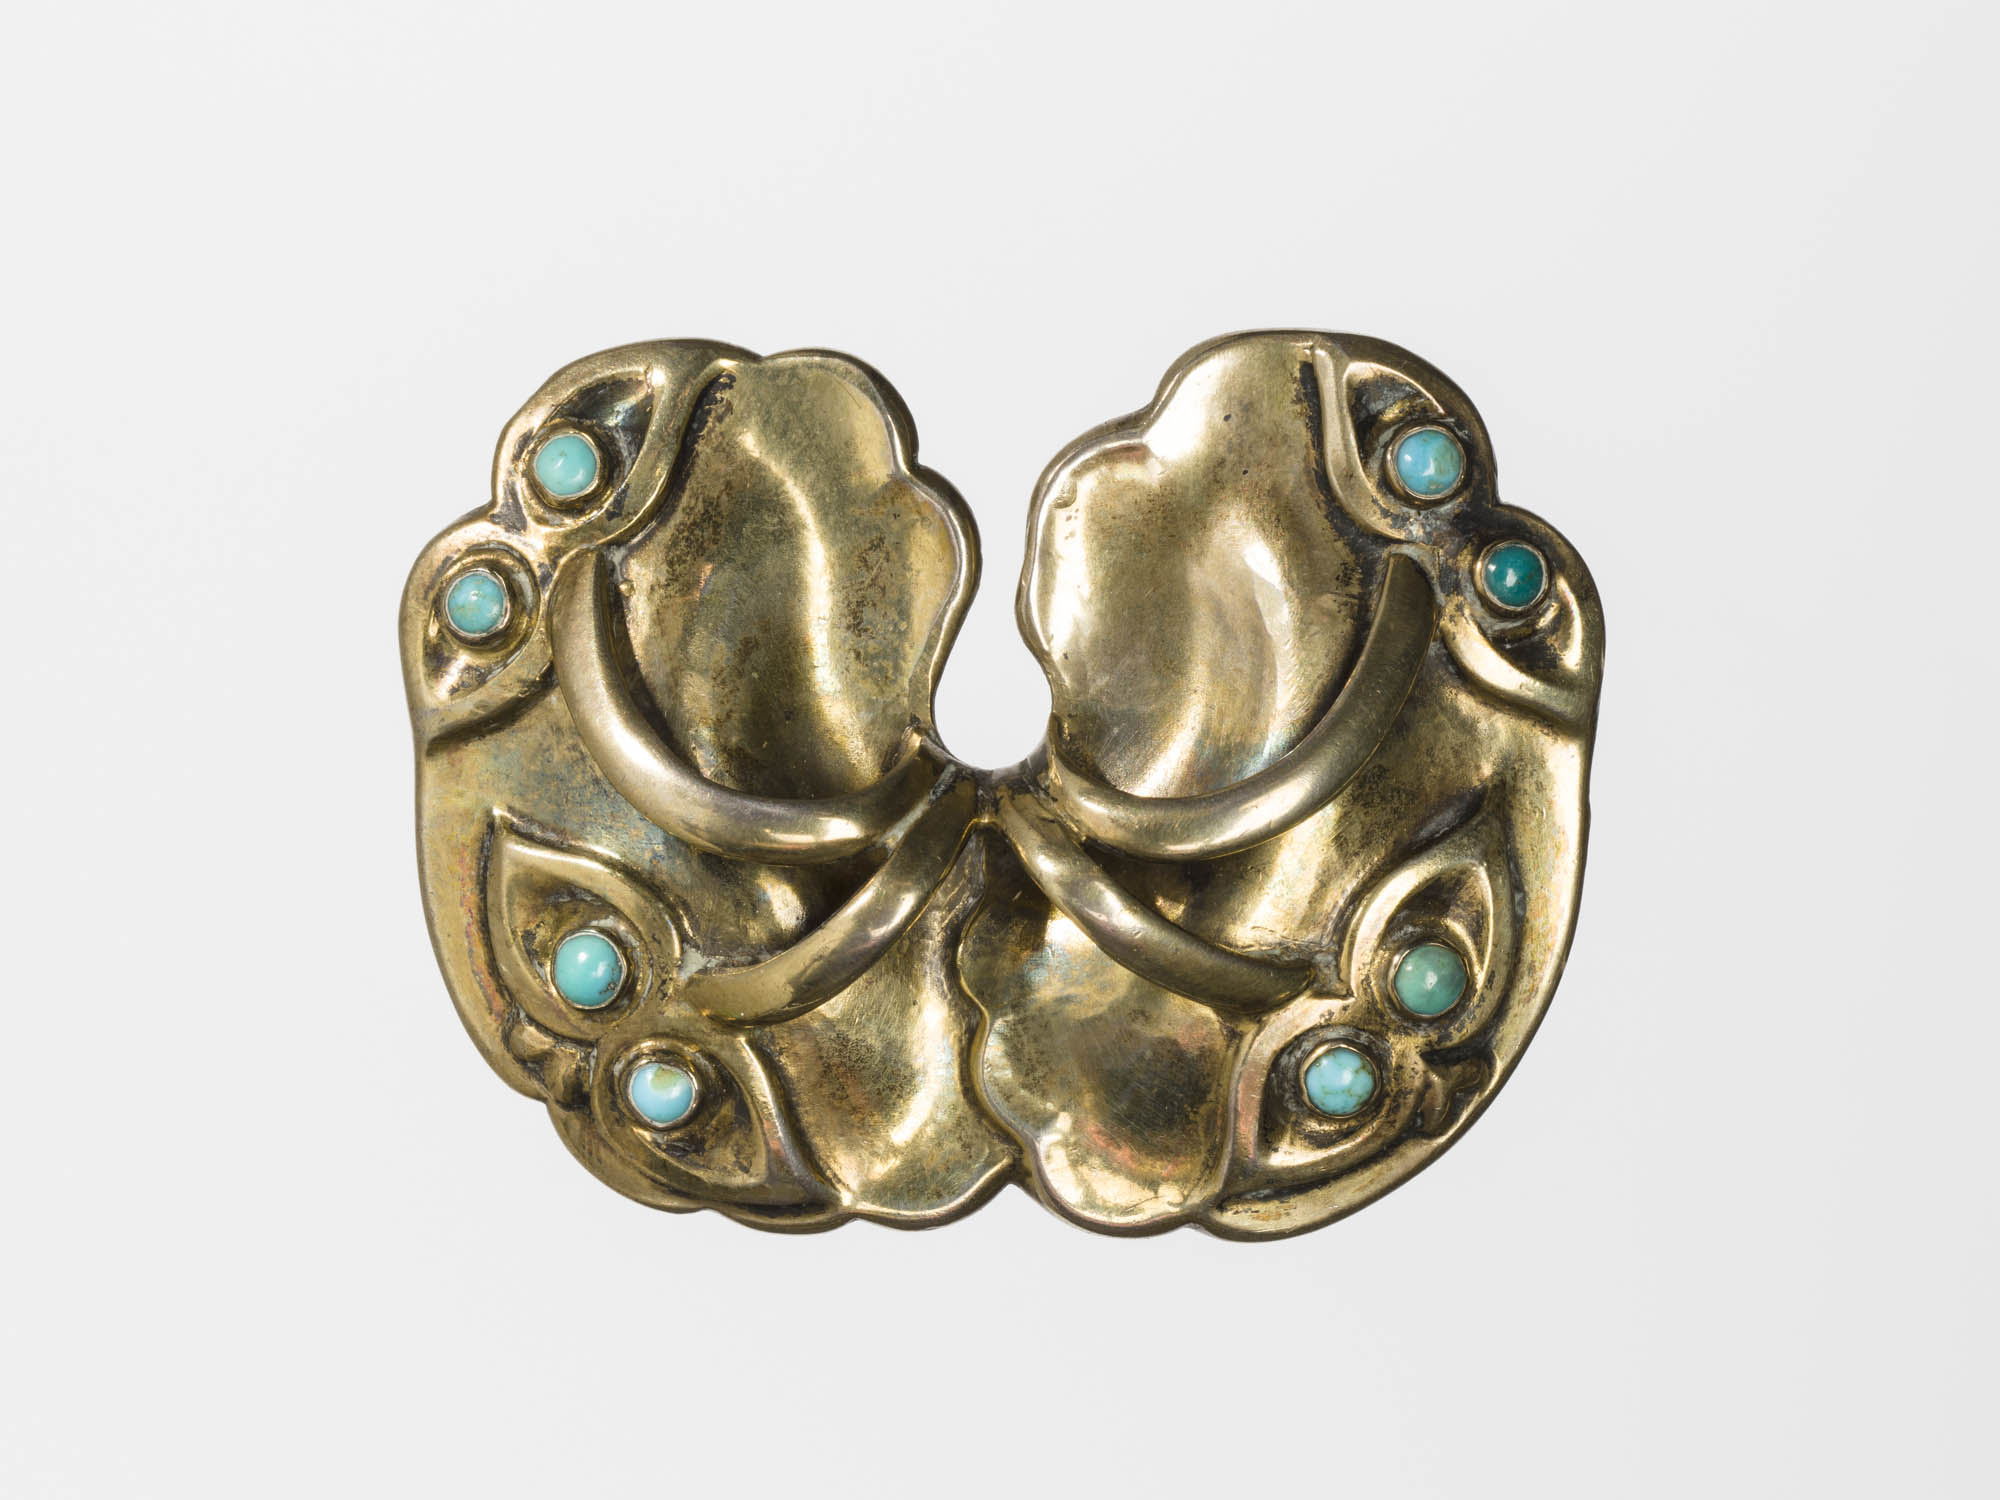 (untitled) Georg Jensen Brooch